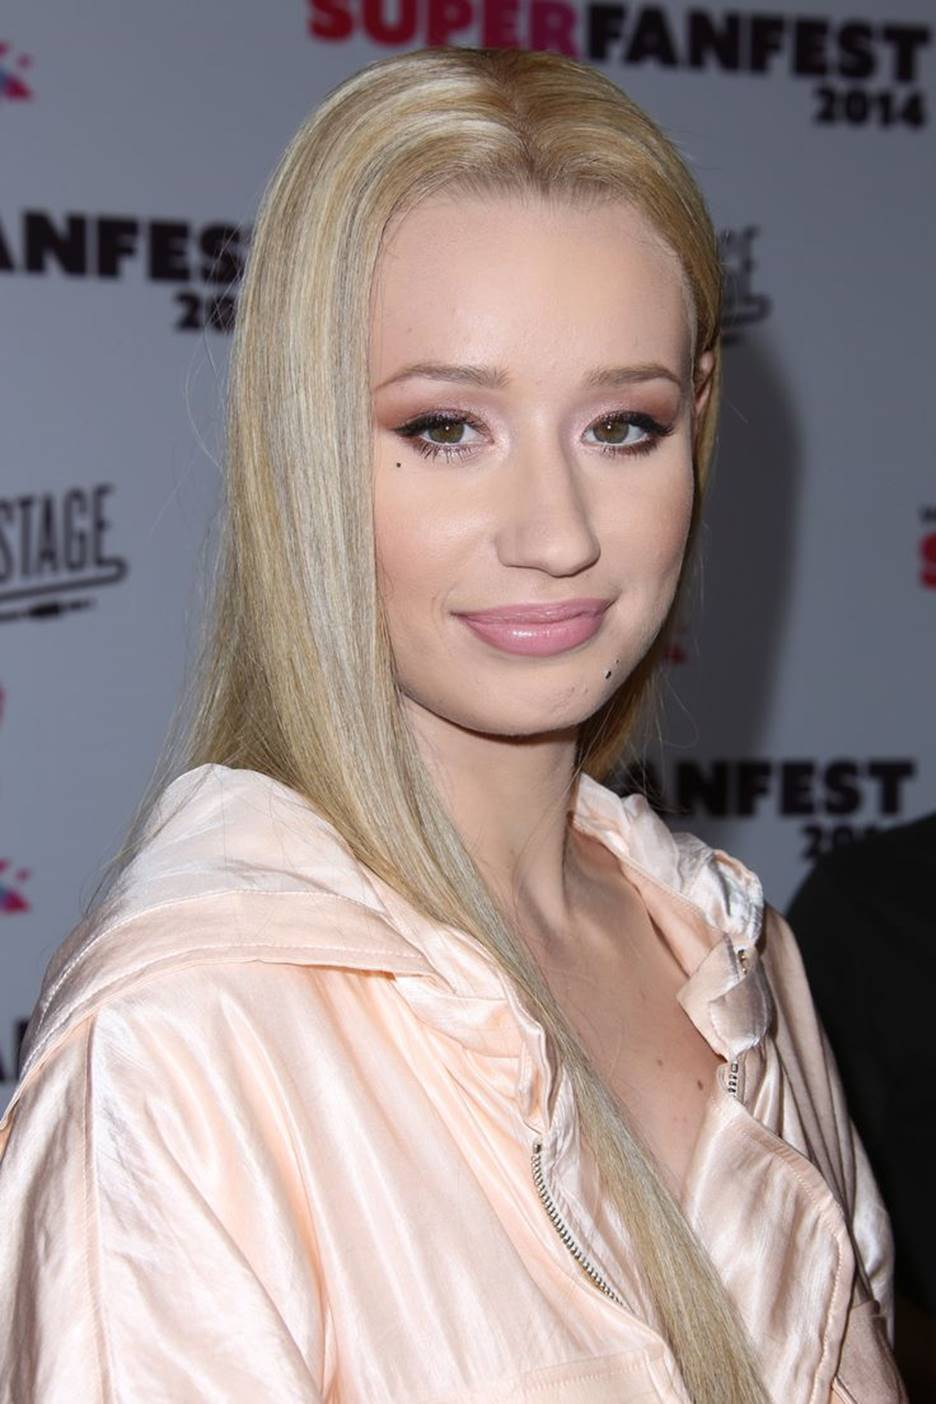 Iggy without makeup